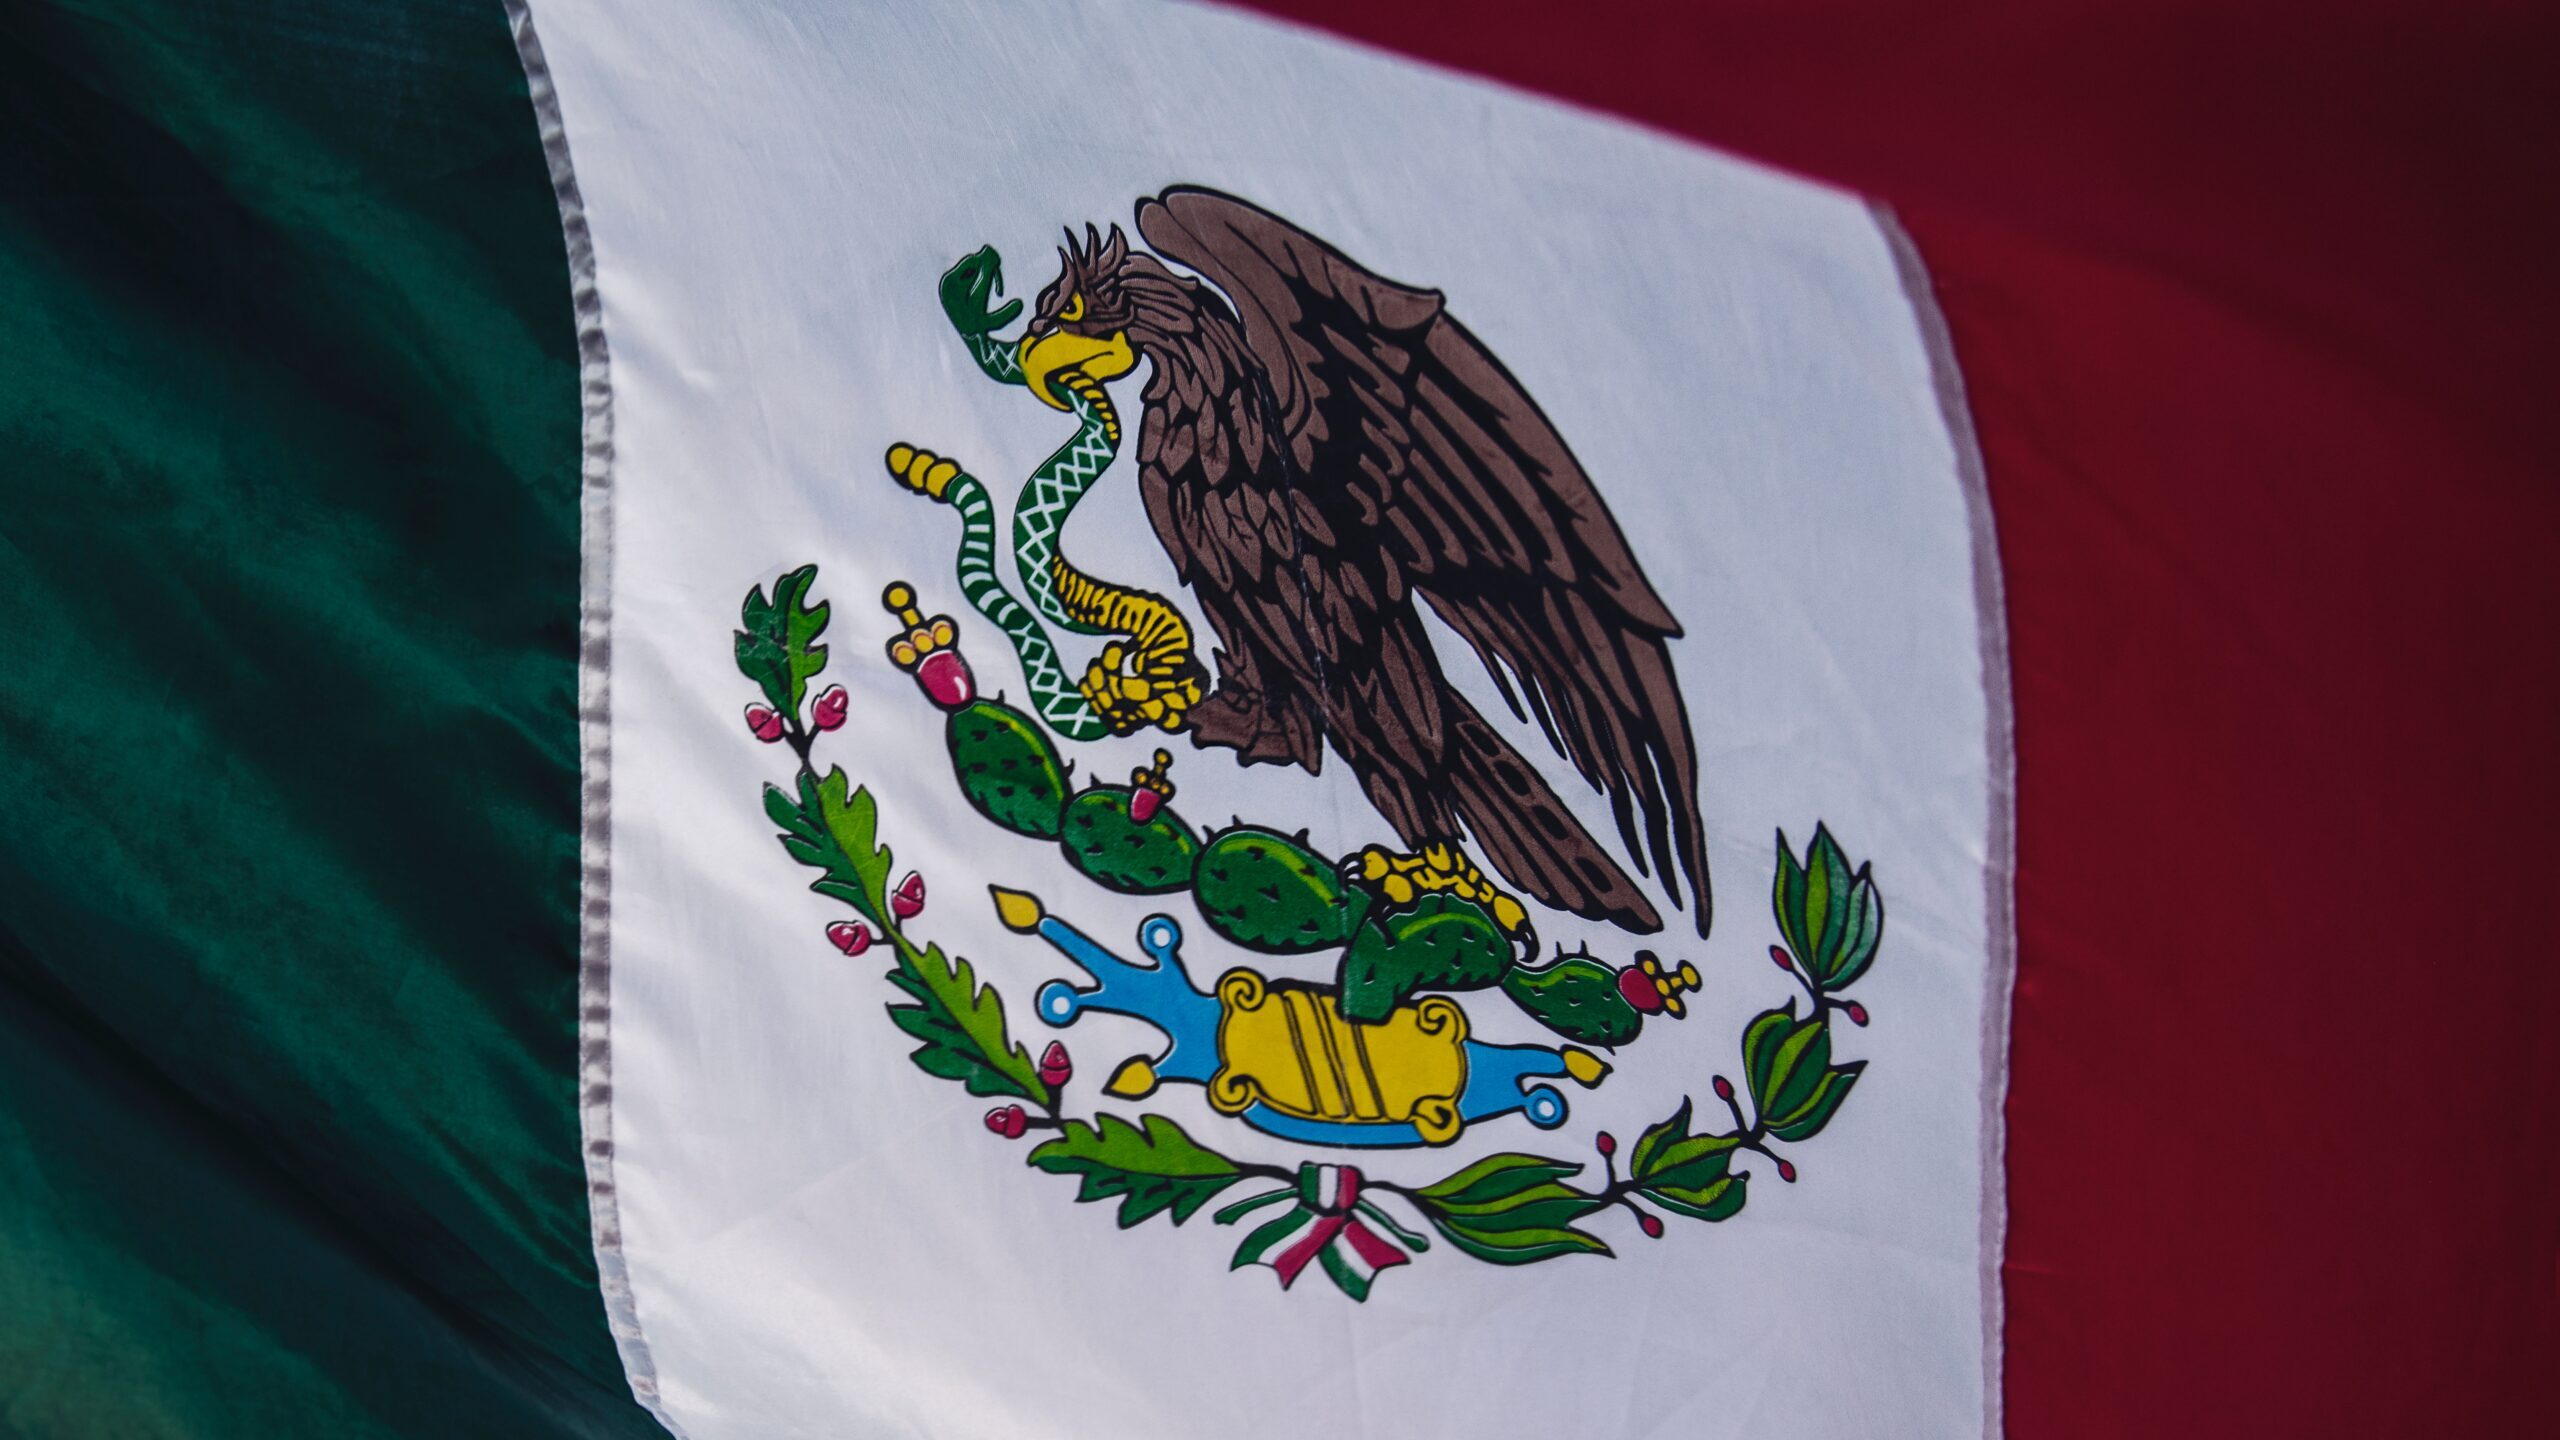 The Eagle Has Landed: The Symbol Personifies The Spirit Of Mexico